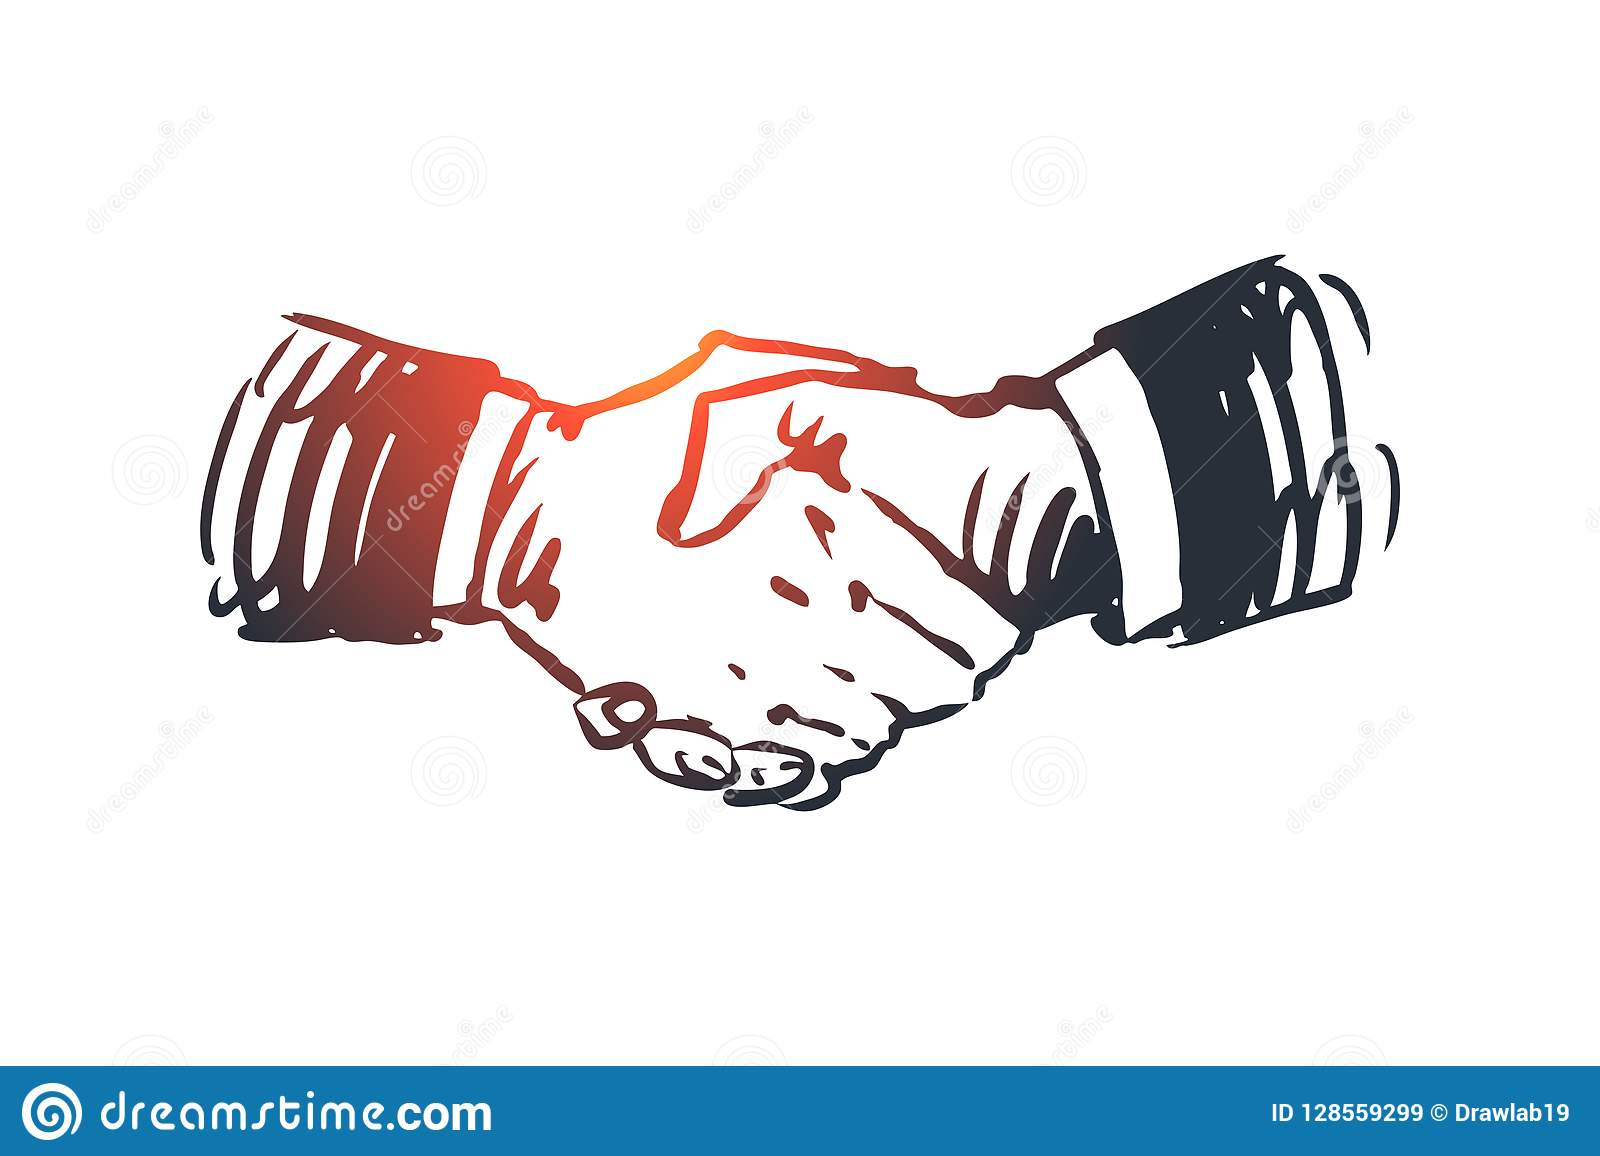 Commitment, hand, deal, business, partnership concept. Hand drawn isolated vector.